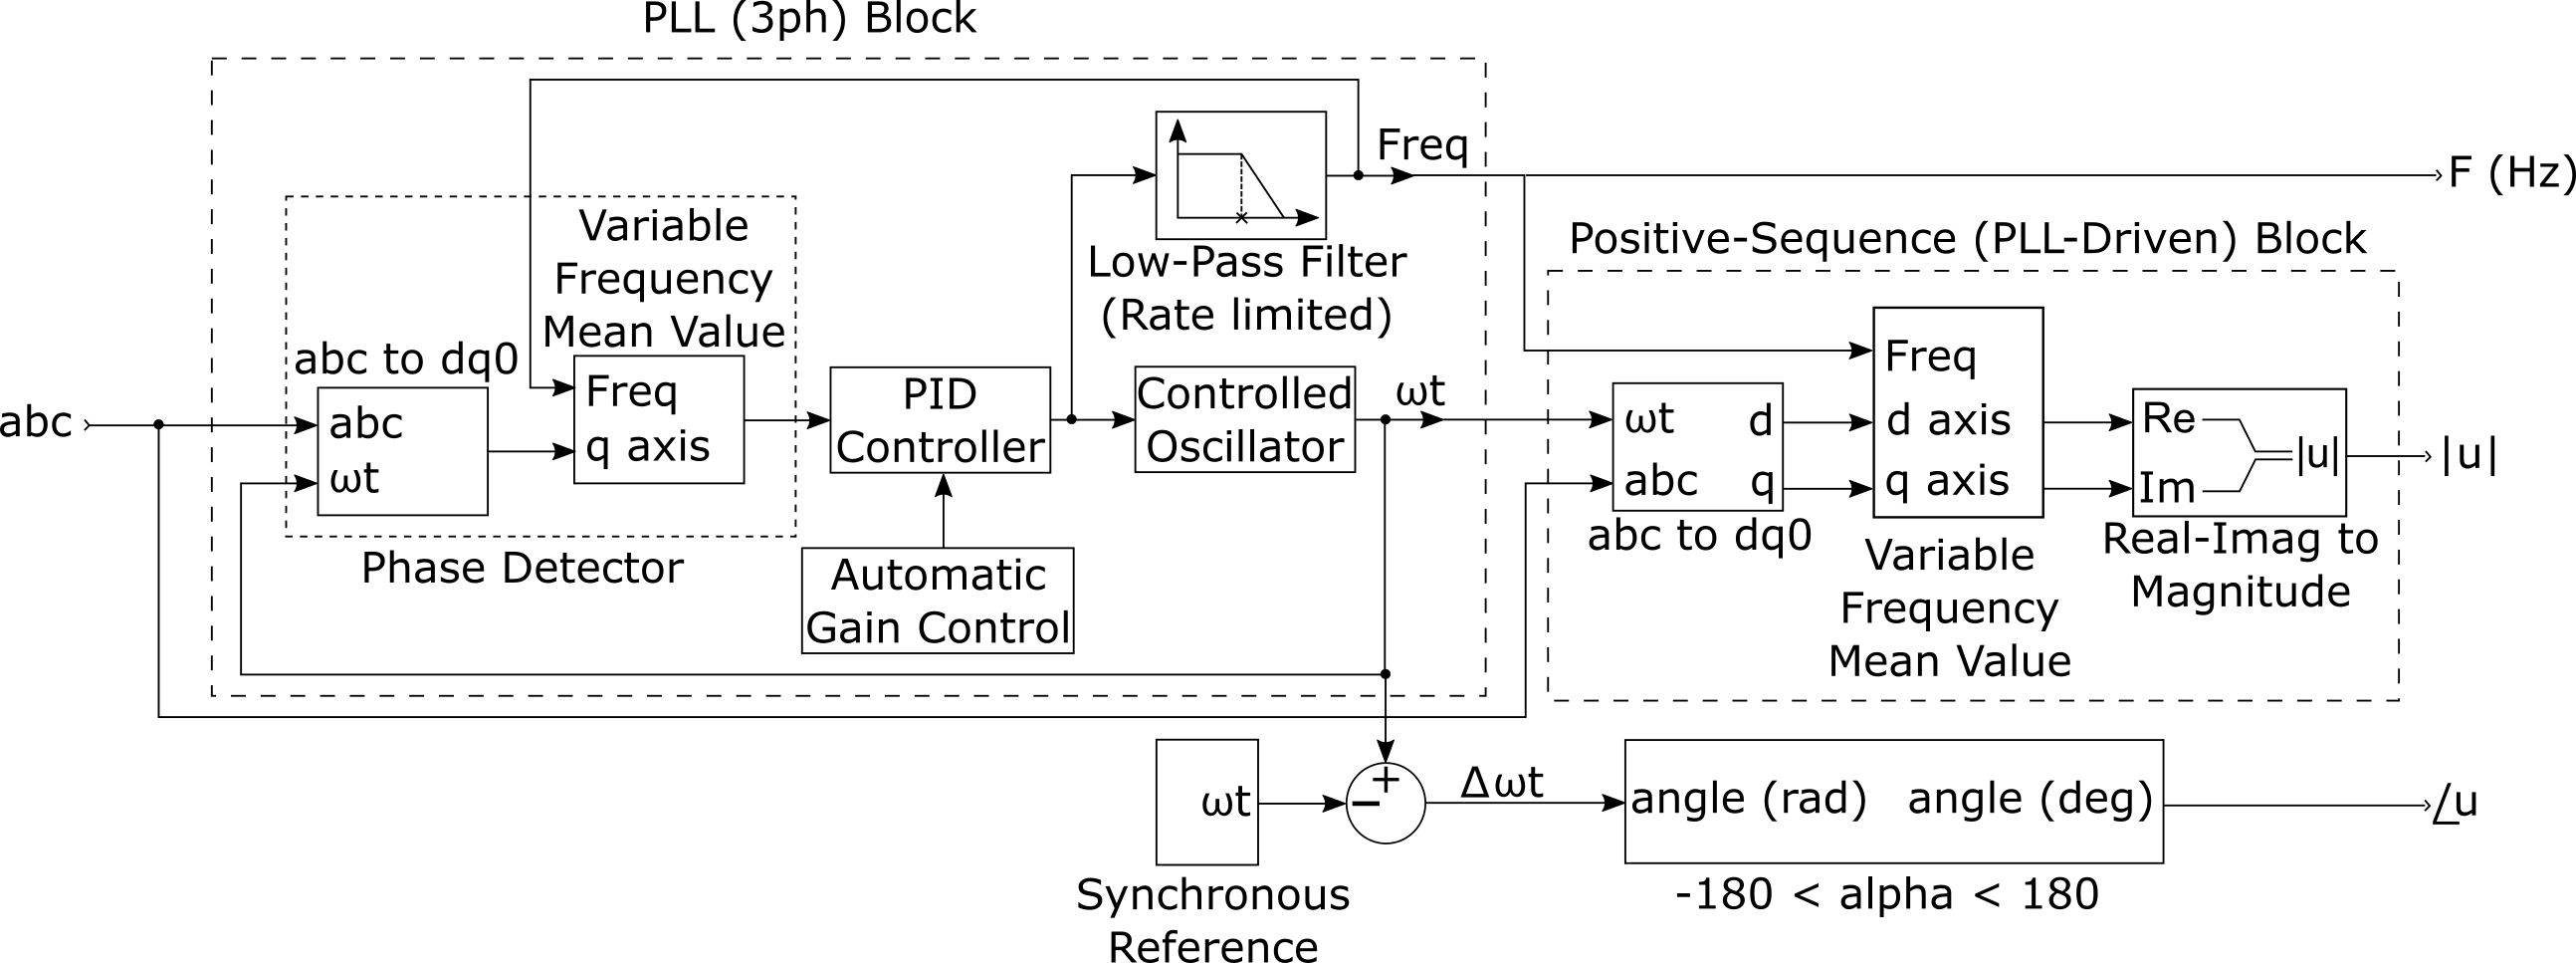 The signal can be a set of three balanced or unbalanced signals which may  contain harmonics. The PMU (PLL-Based, Positive-Sequence) block is inspired  by the ...